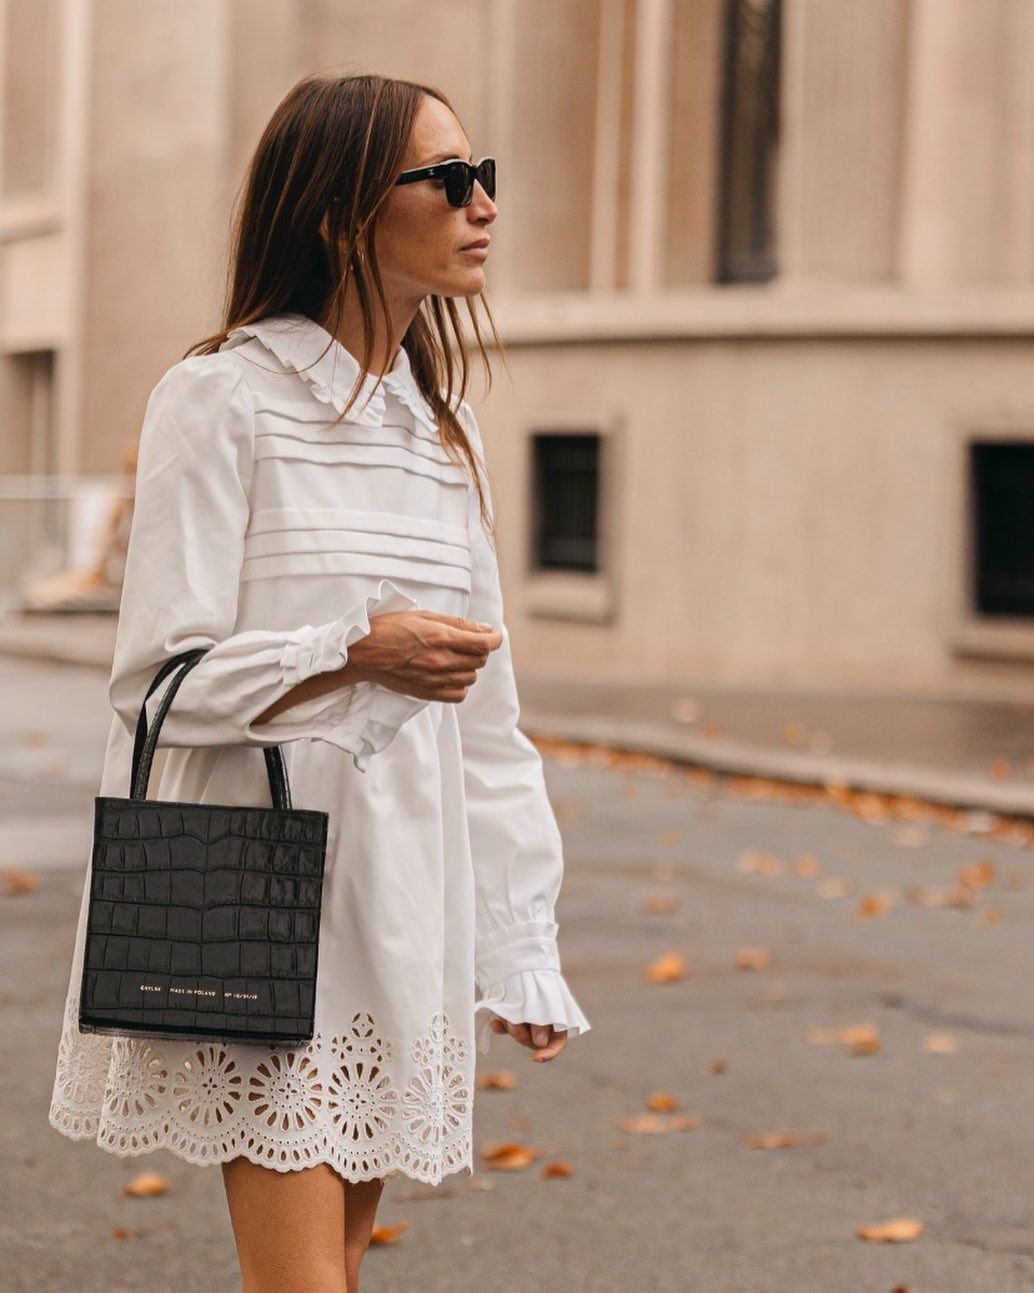 chloe-harrouche-chylak-square-glossed-croc-effect-leather-tote-instagram